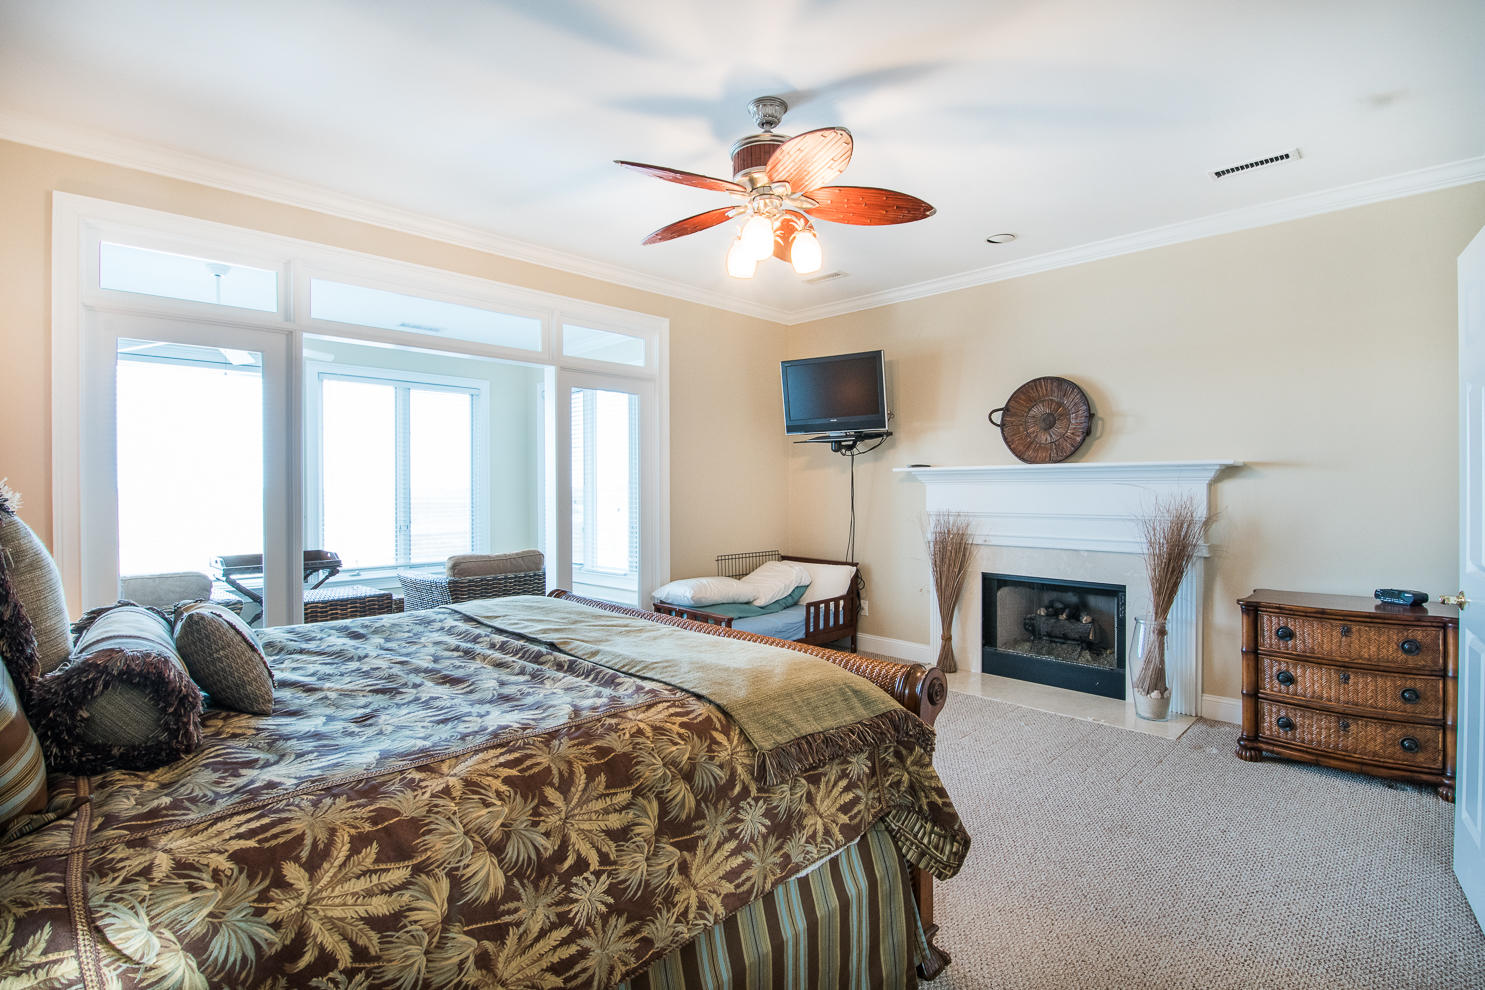 Tolers Cove Homes For Sale - B-4 & B-5 Tolers Cove Marina 70ft + Home, Mount Pleasant, SC - 17